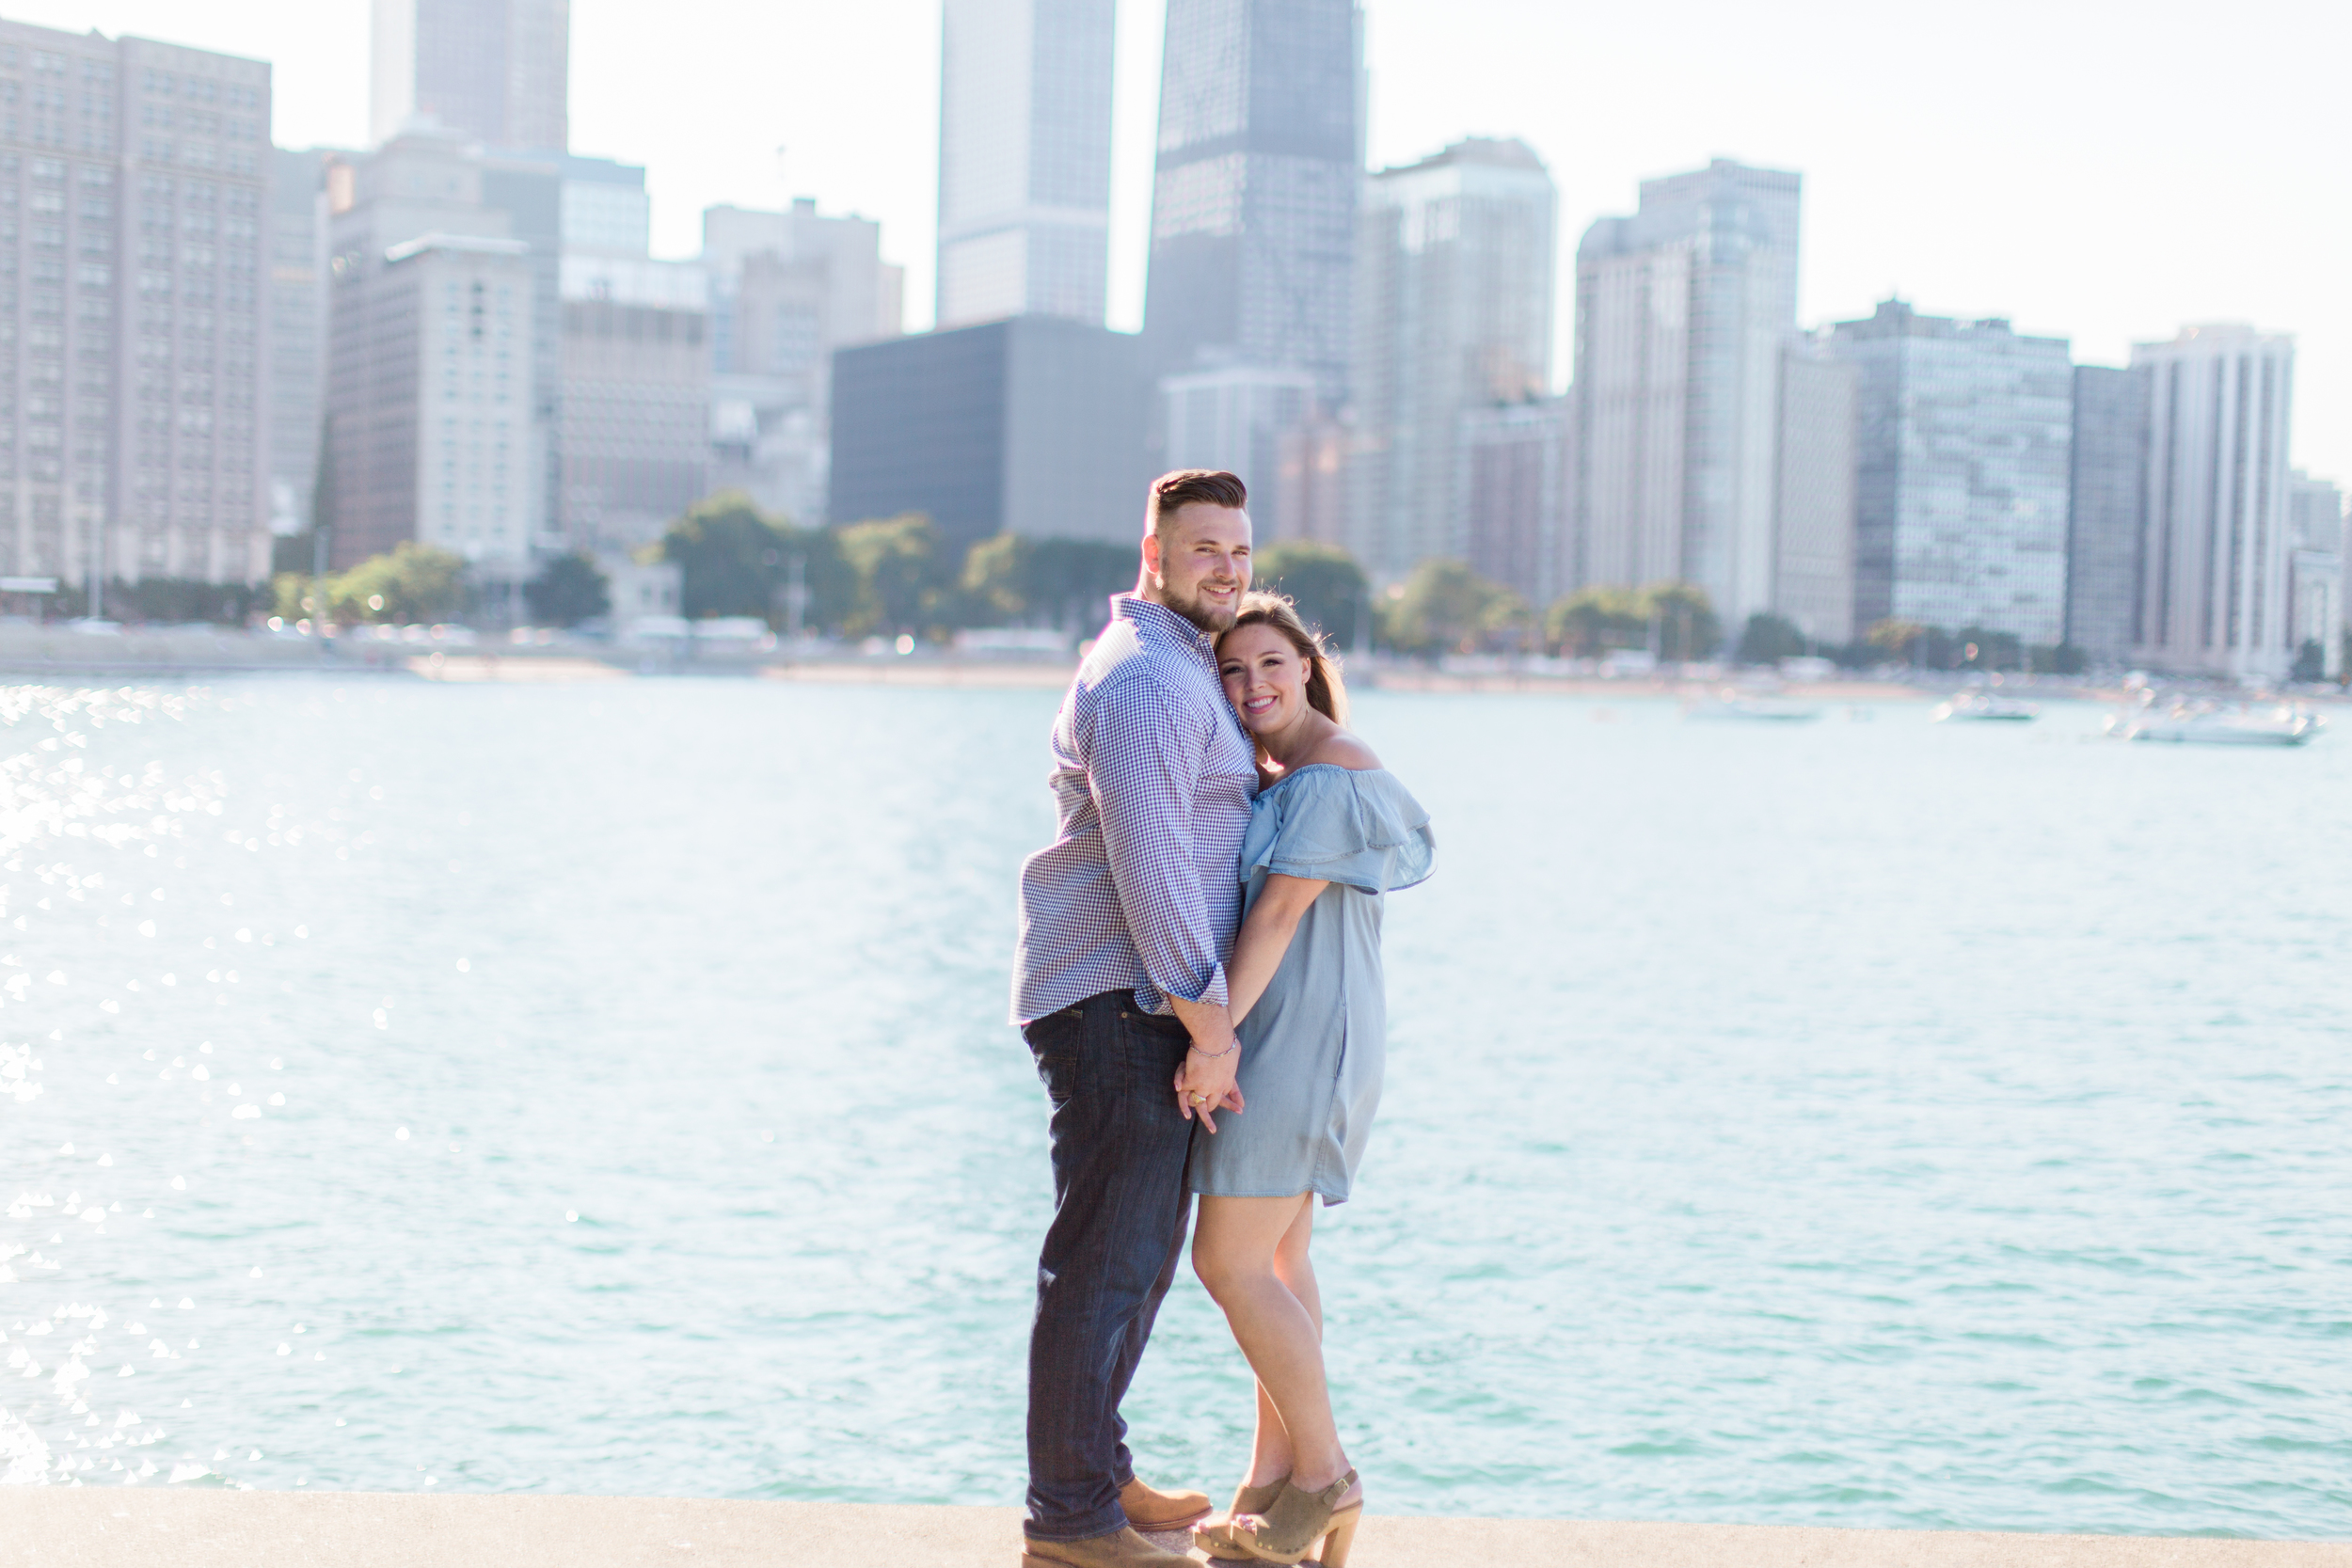 Bonphotage Chicago and Destination Wedding Photography